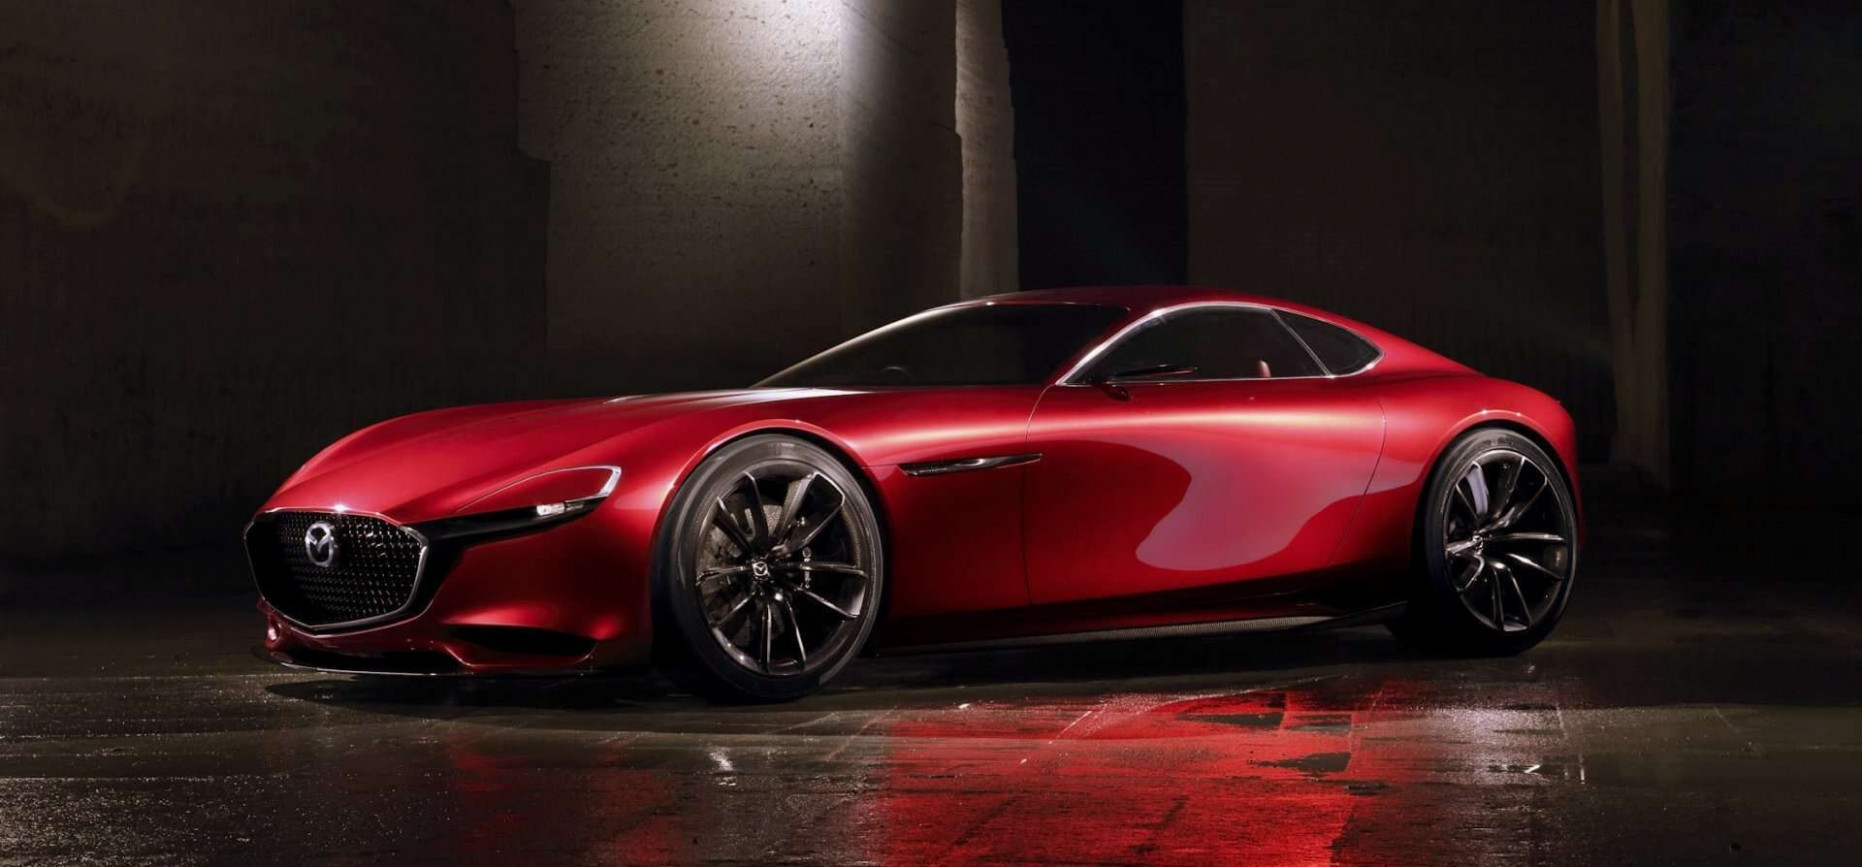 12 Mazda 12 Redesign: Vision Coupe & Use SkyActiv-X or D